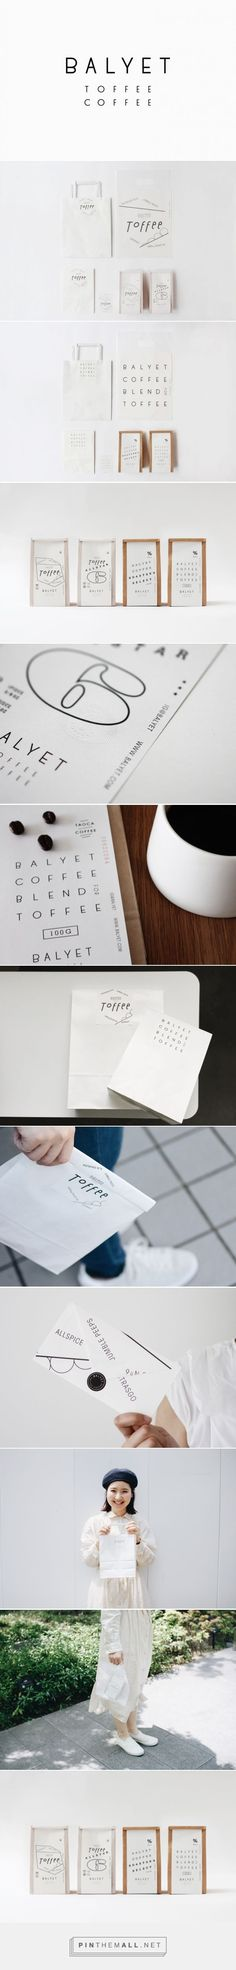 Complete visual identity including packaging design and stationery for a modern, simplistic coffee brand. Minimalism pairs with an organic, natural touch for a hipster branding board and logo design. Brand Identity Design, Corporate Design, Branding Design, Logo Design, Web Design, Layout Design, Packaging Design, Brand Packaging, Coffee Branding